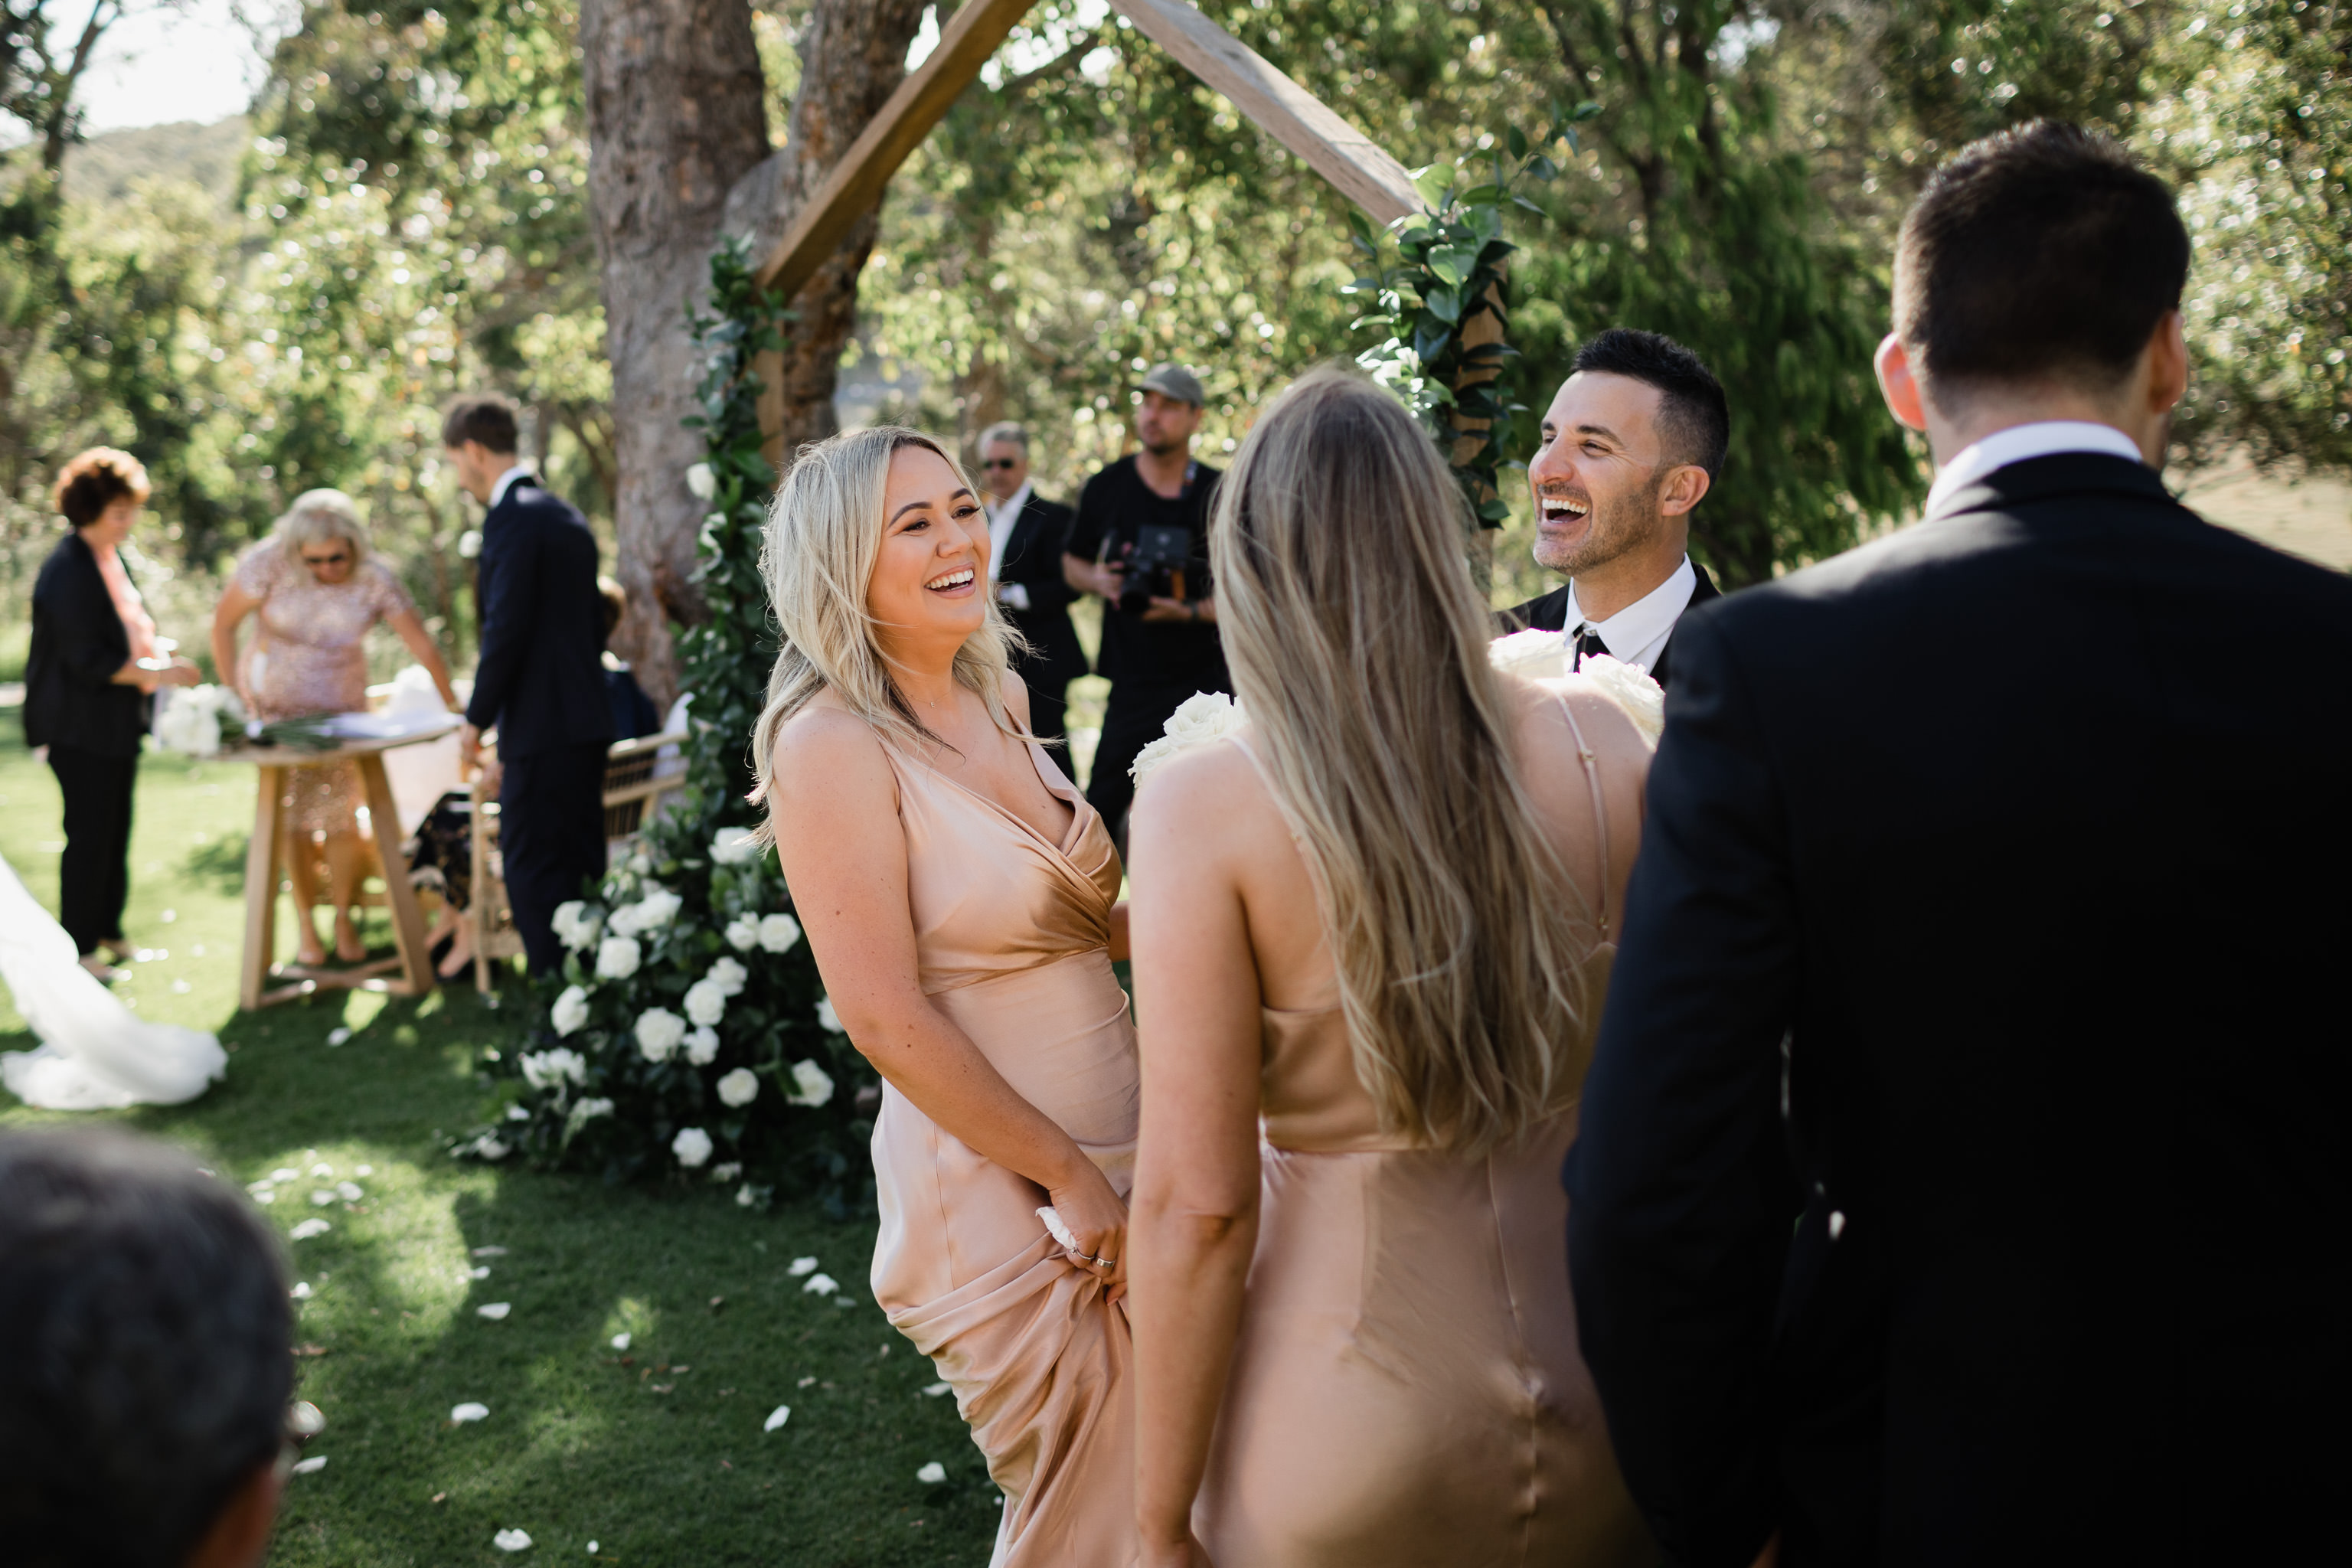 Bridesmaid and groomsman laughing during wedding ceremony at Meelup Farmhouse